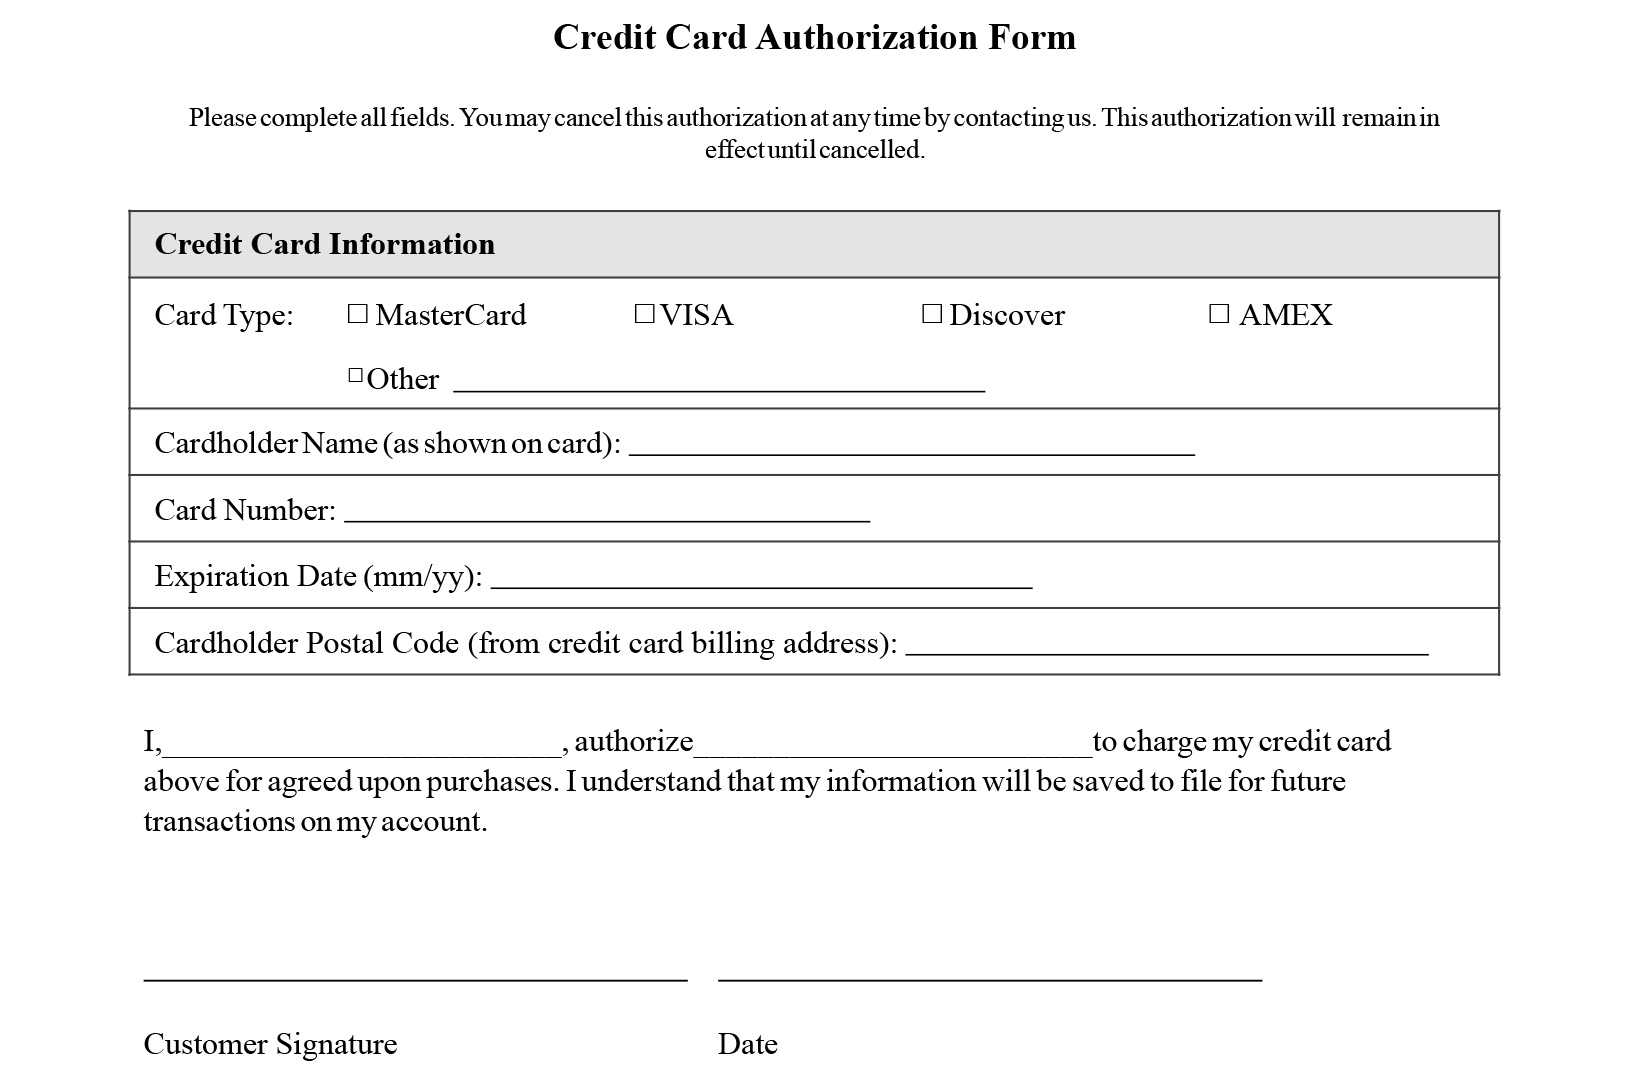 Credit Card Authorization Form Templates [Download] Regarding Credit Card Authorization Form Template Word